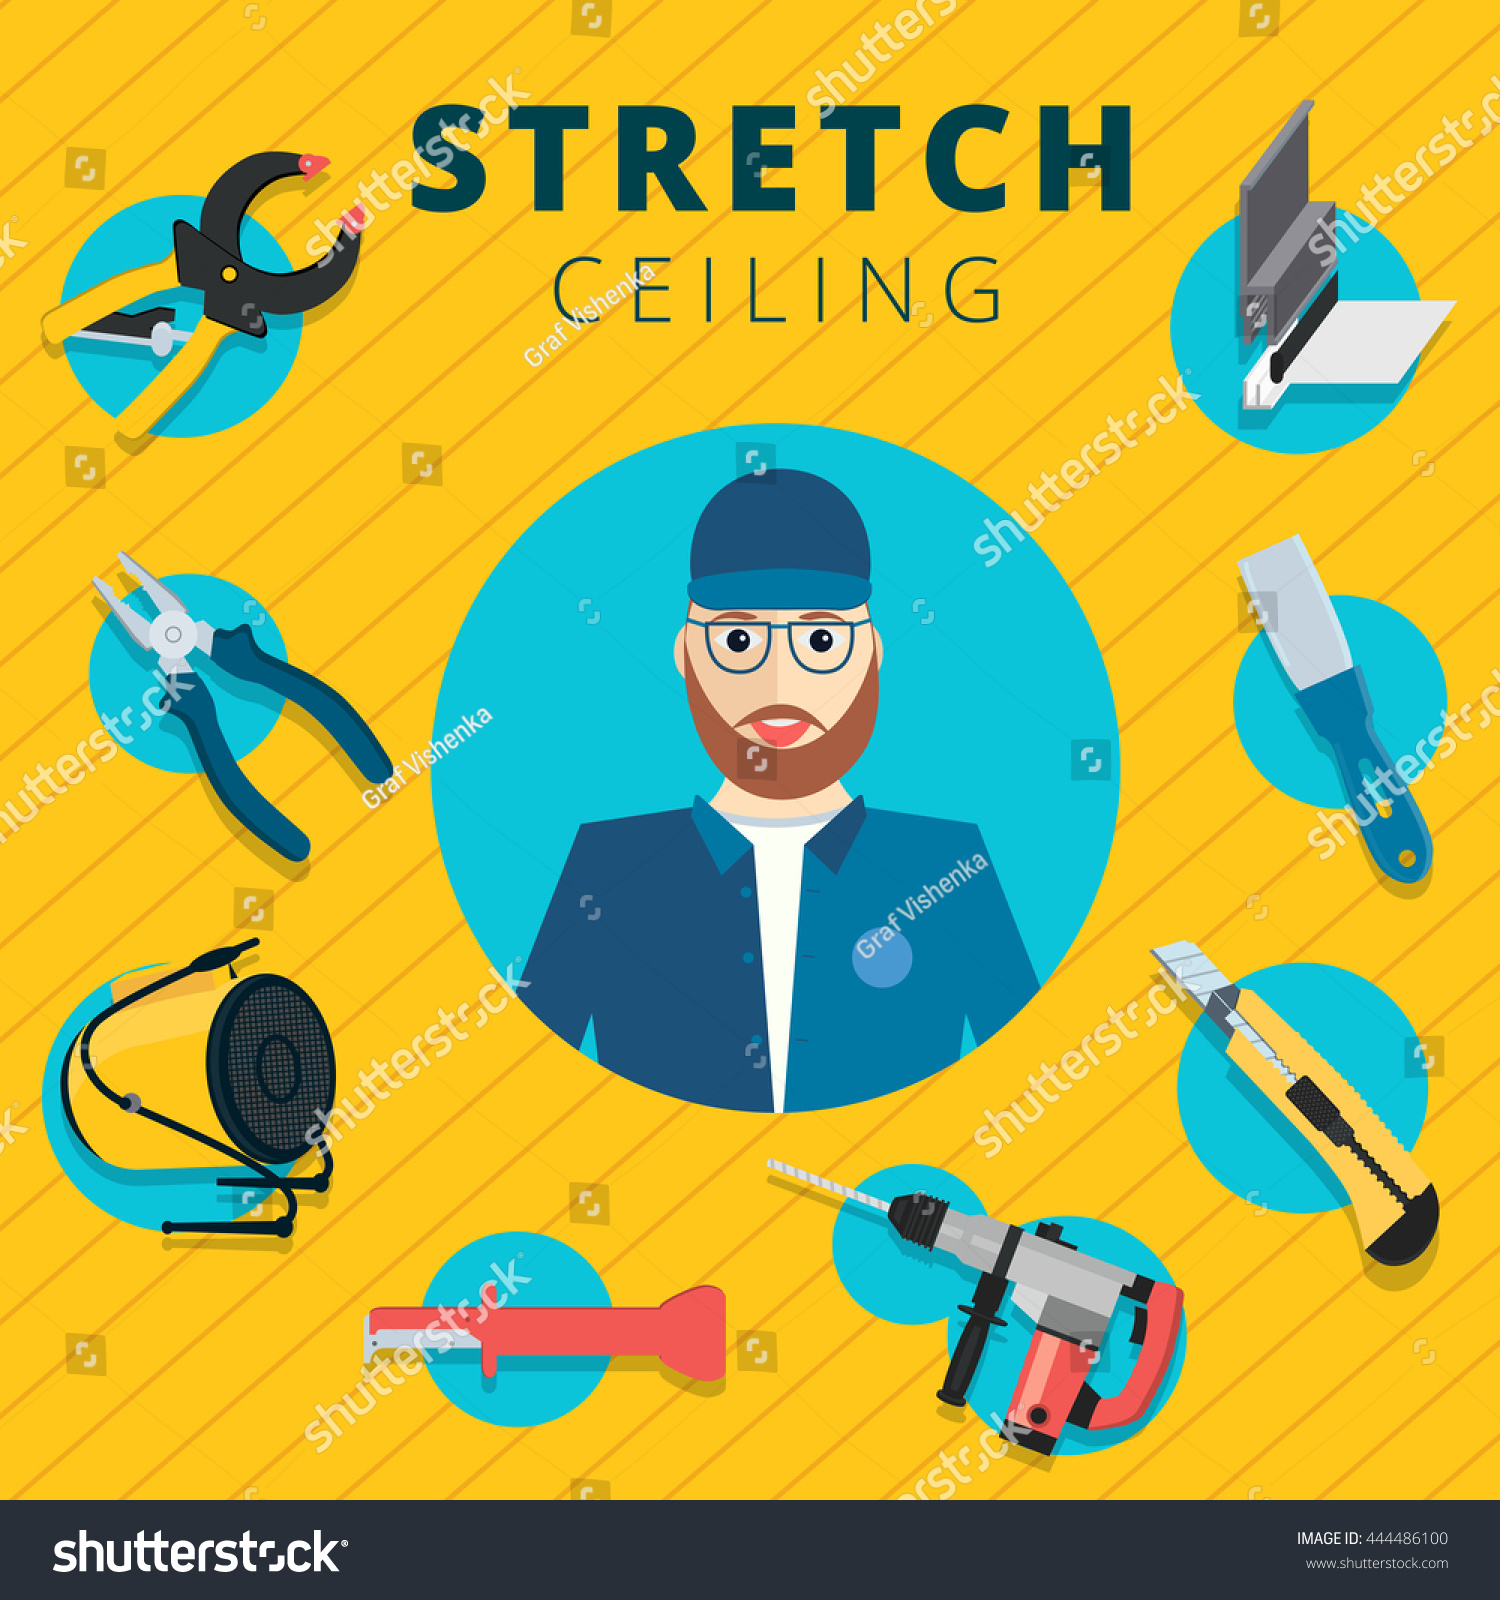 Ceiling Design Vector Stretch Ceiling Vector Tools Worker Illustration Stock